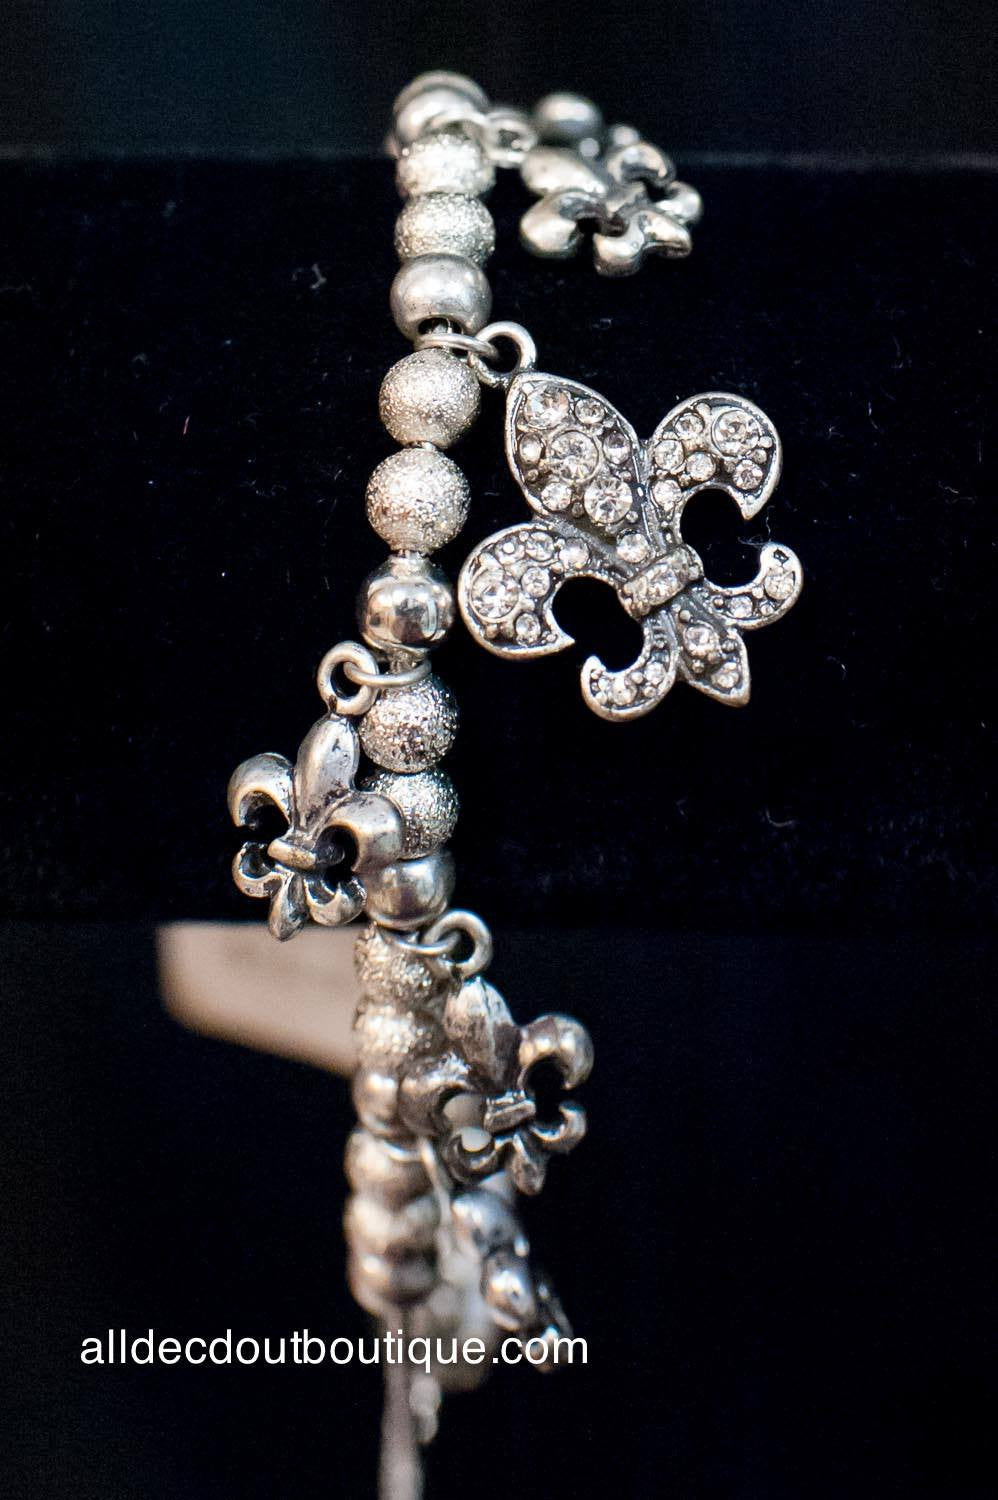 ADO | Silver Beaded Fleur De Lis Adjustable Charm Bracelet